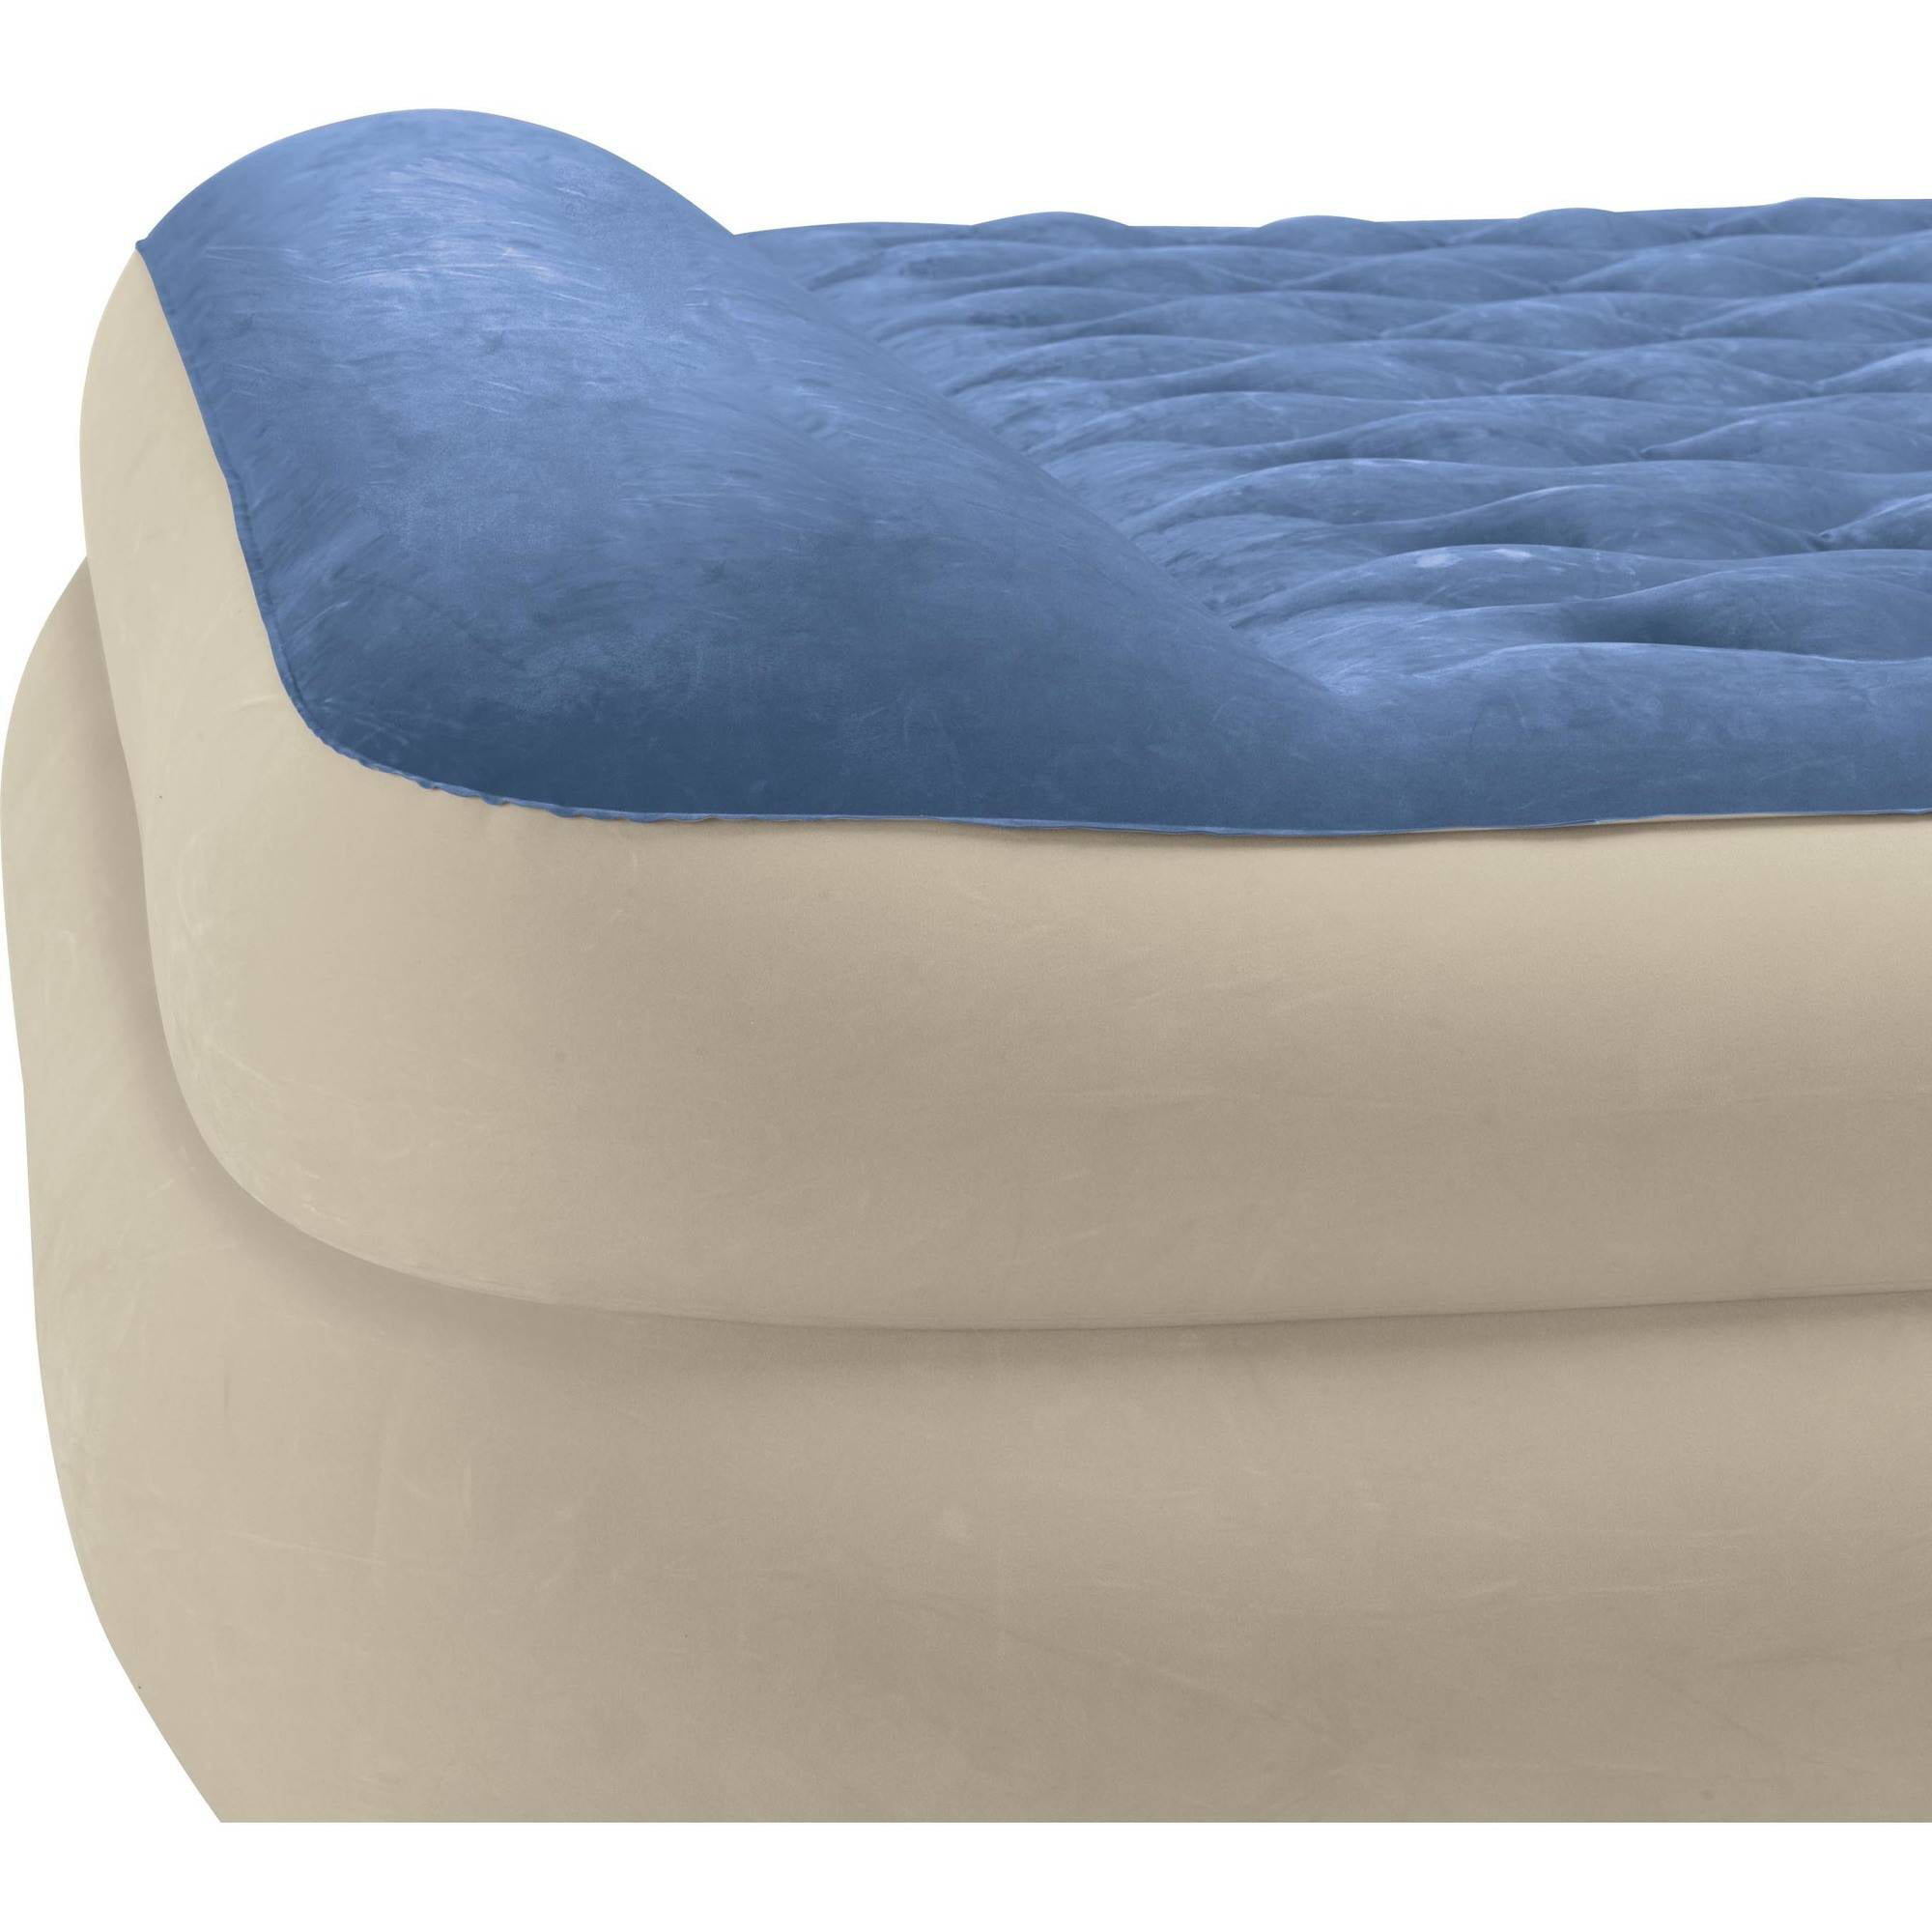 walmart air mattress prices Intex Queen 18